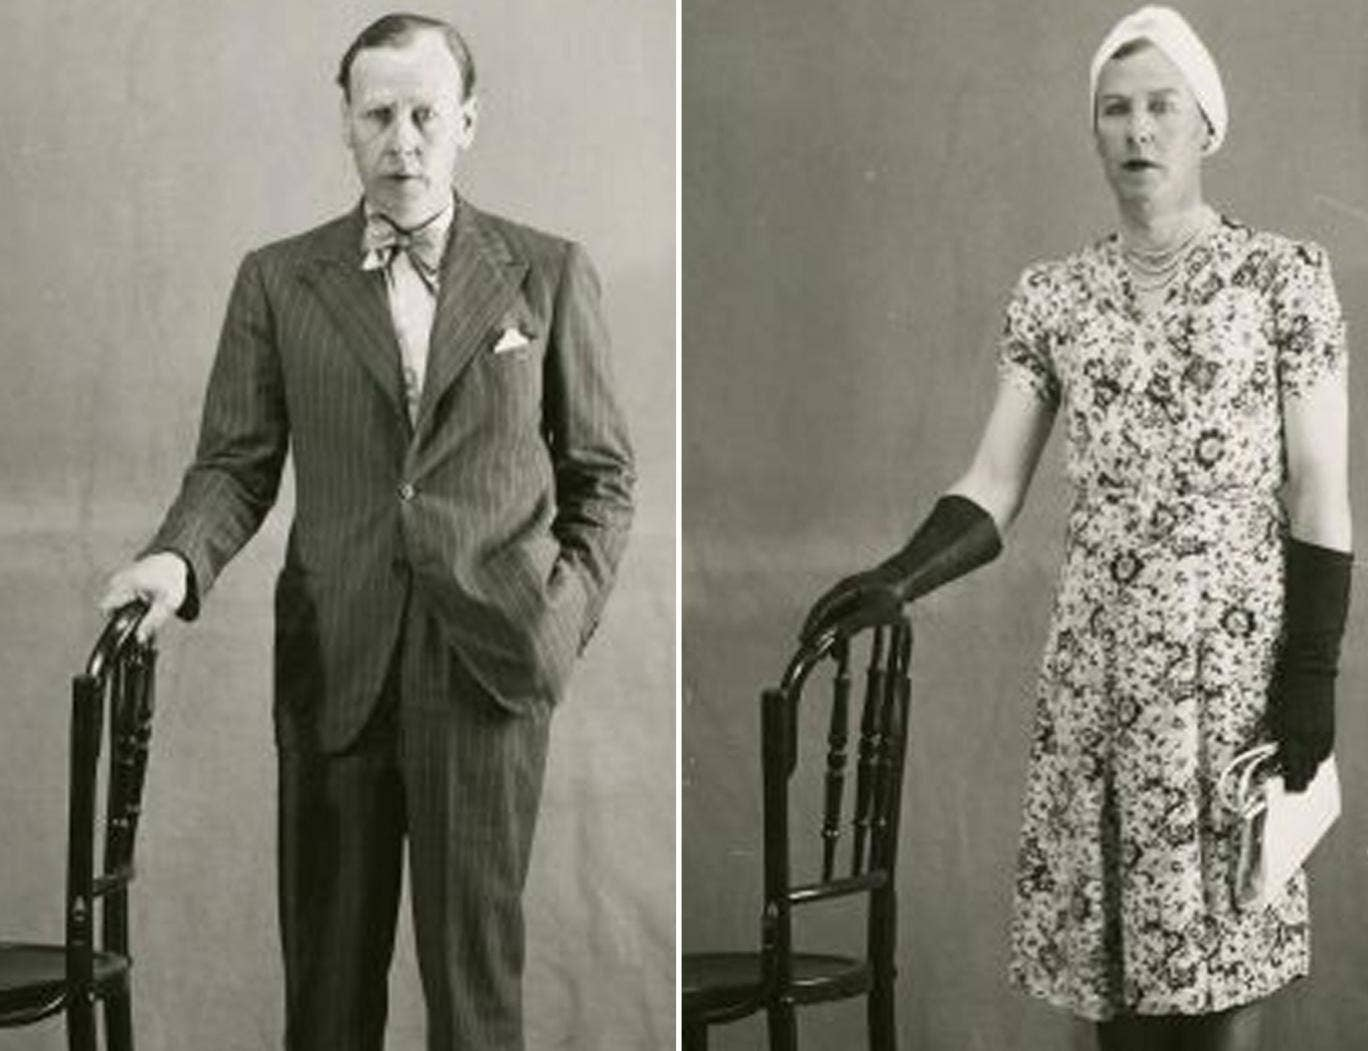 Lieutenant Colonel Dudley Clarke set alarm bells ringing in Whitehall in 1941 when he was arrested in Madrid dressed as a woman